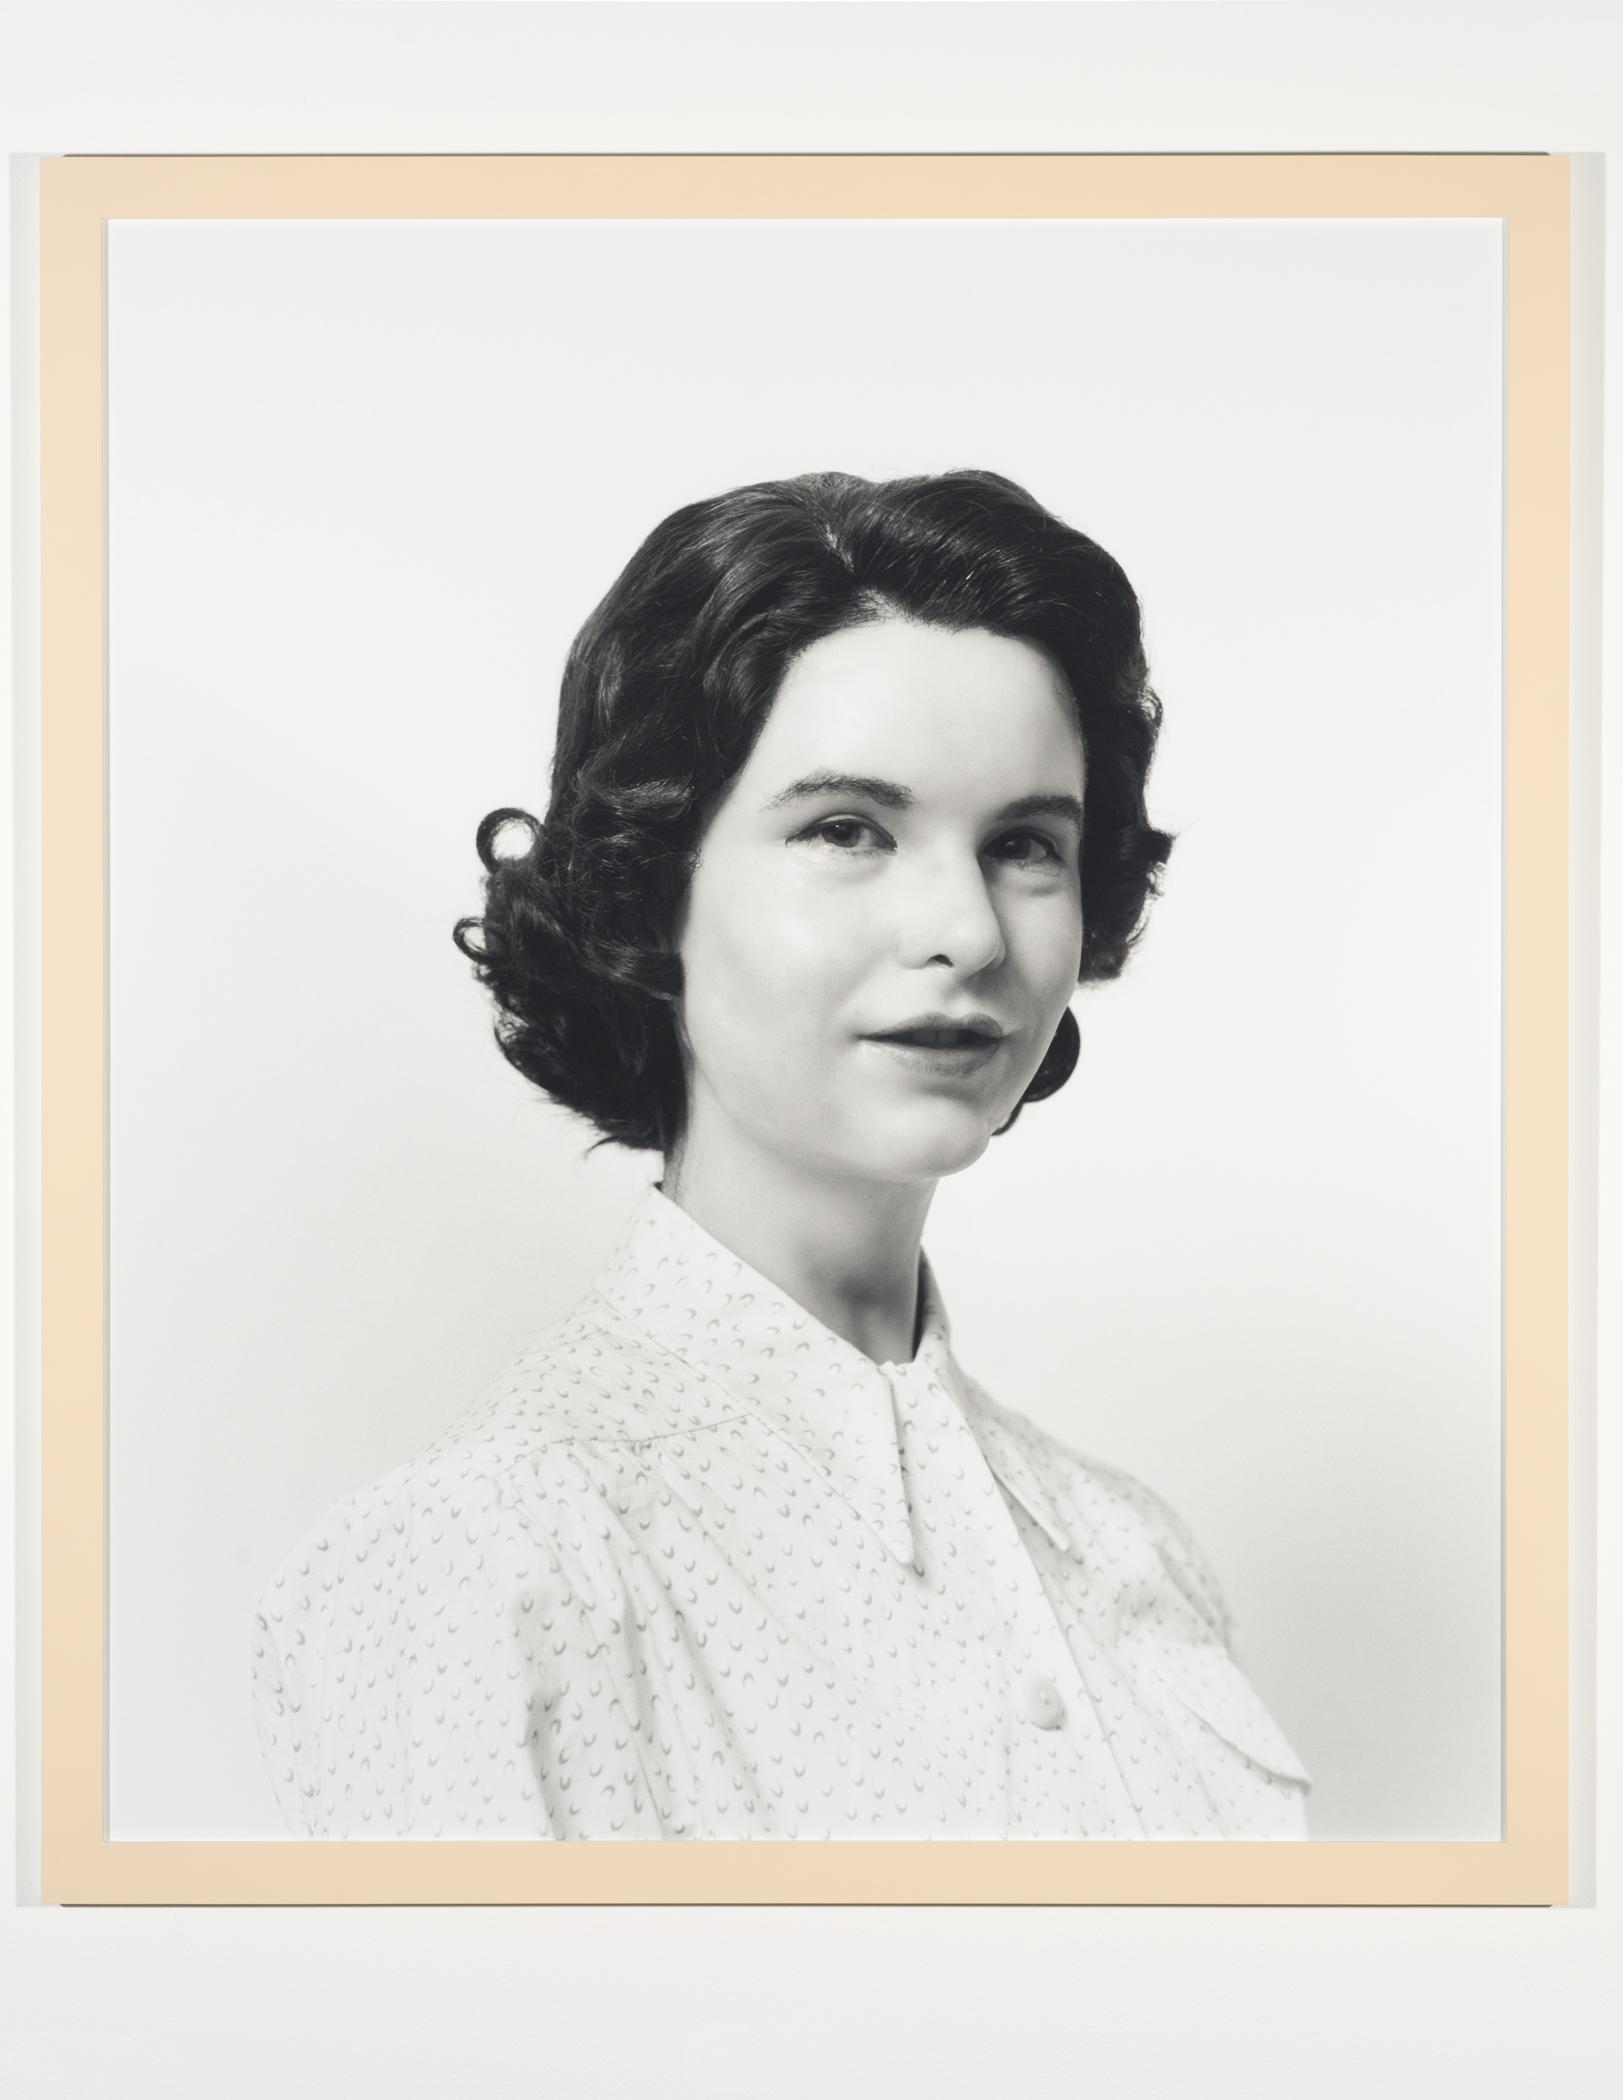 A black-and-white photograph portrait shows a pale-skinned person with short dark hair wearing a white blouse in front of a white background.